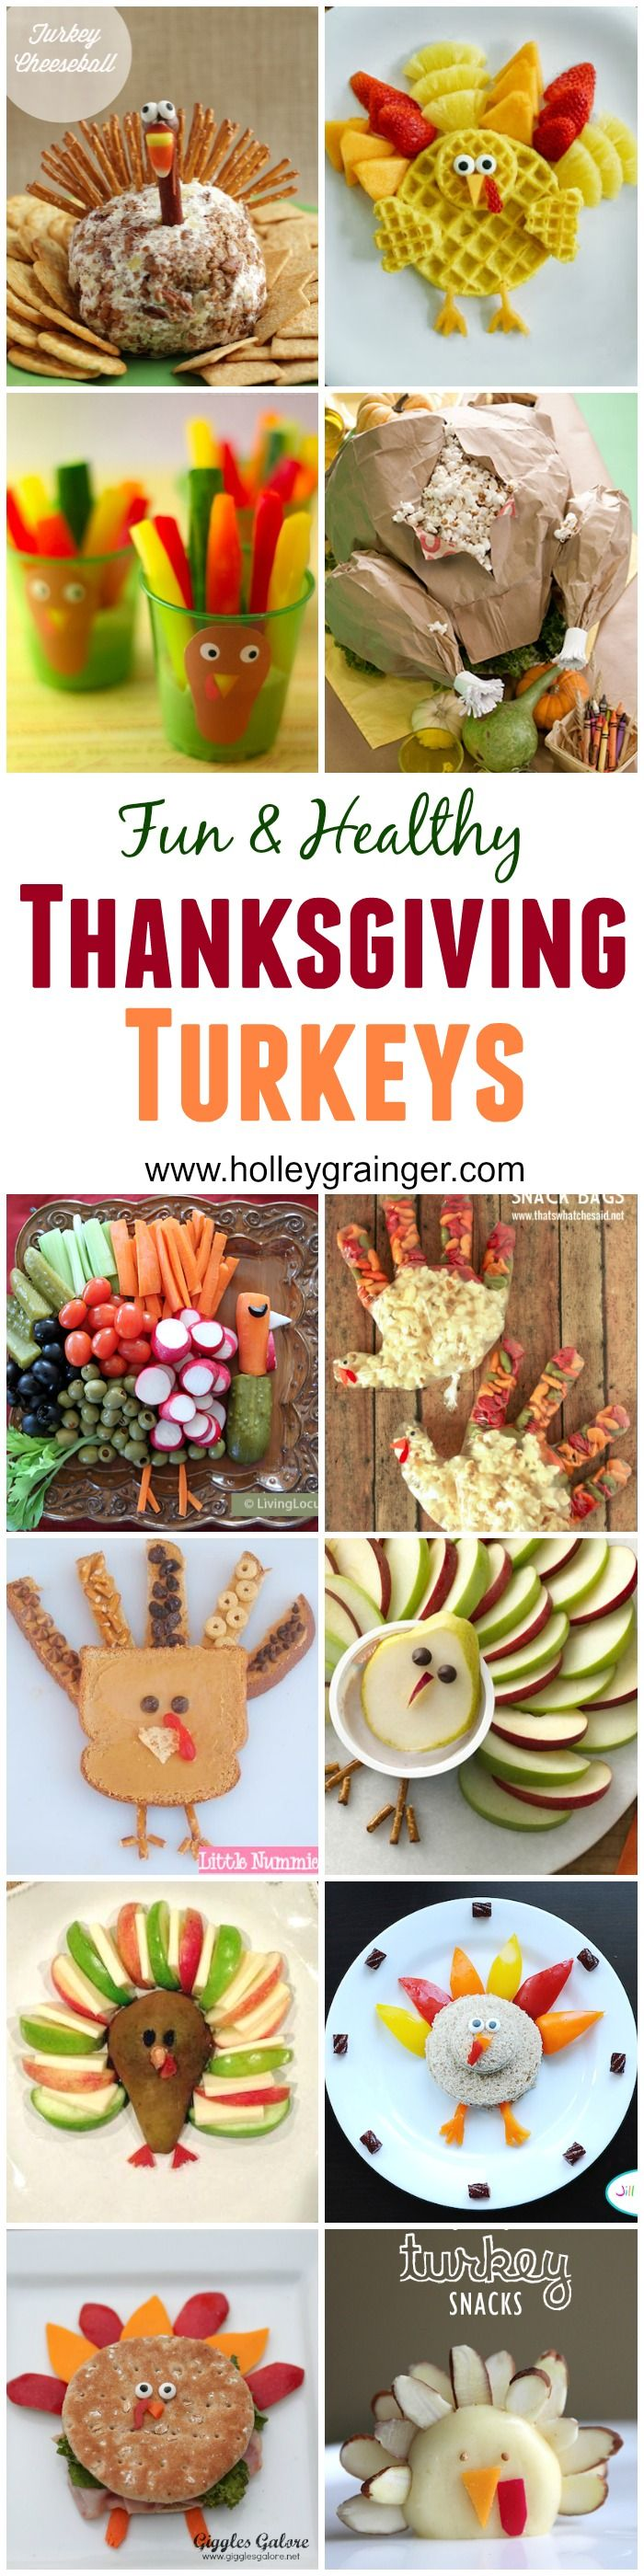 Fun Food Alert: 21 Fun and Healthy Thanksgiving Turkeys compiled by Holley Grainger Nutrition